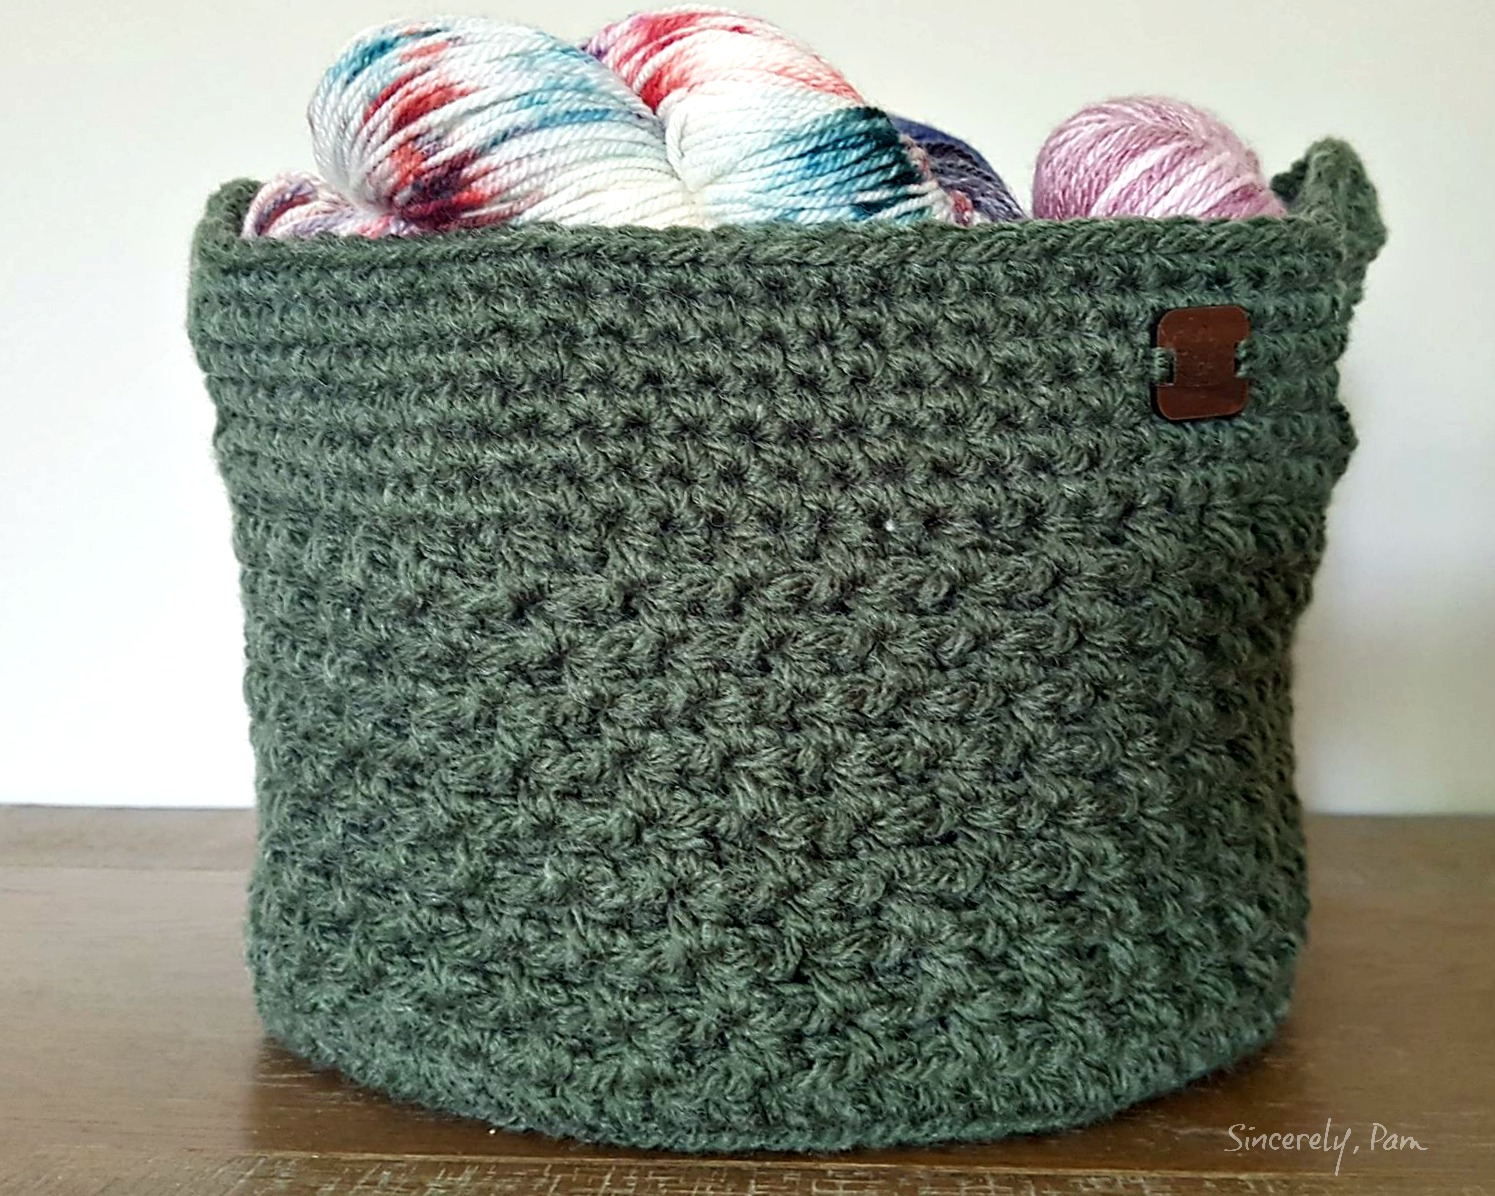 Lansdowne Basket crochet pattern in Bulky yarn